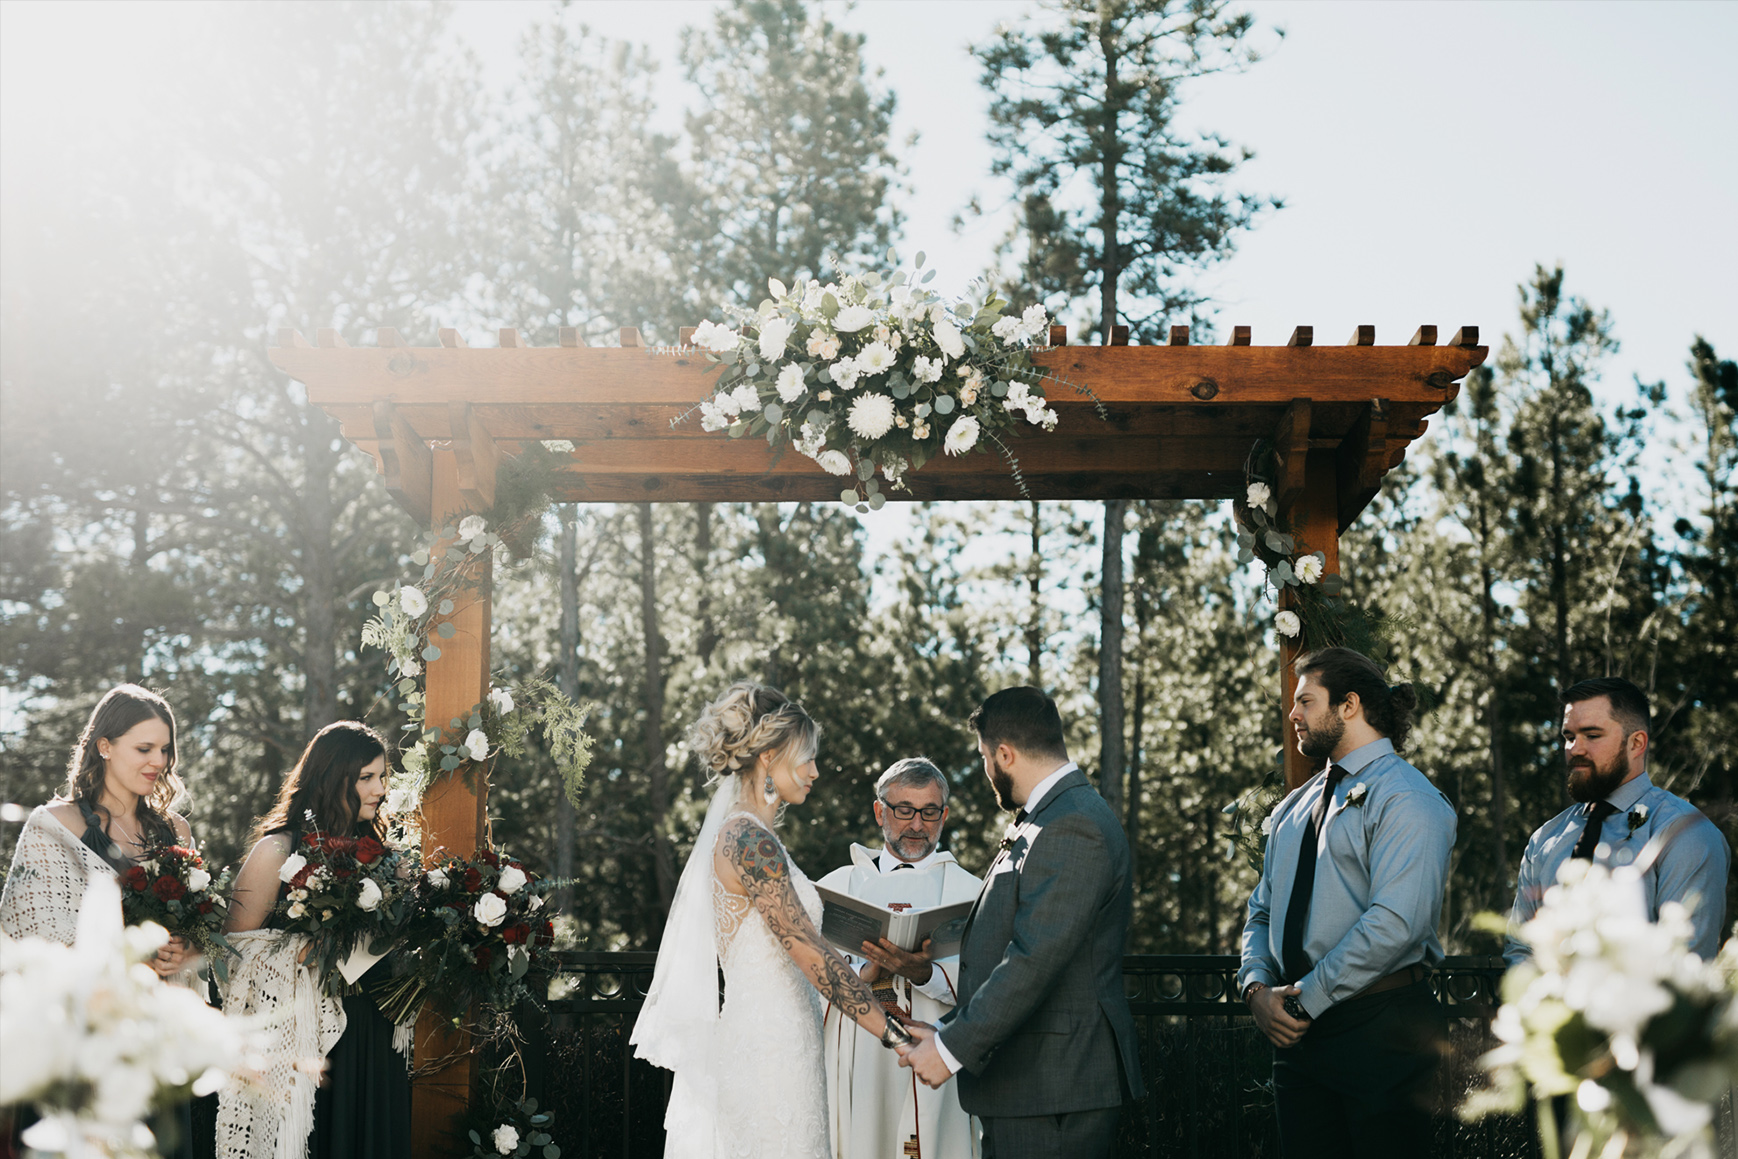 BlackForest-Ceremony-1738x1159-WedgewoodWeddings